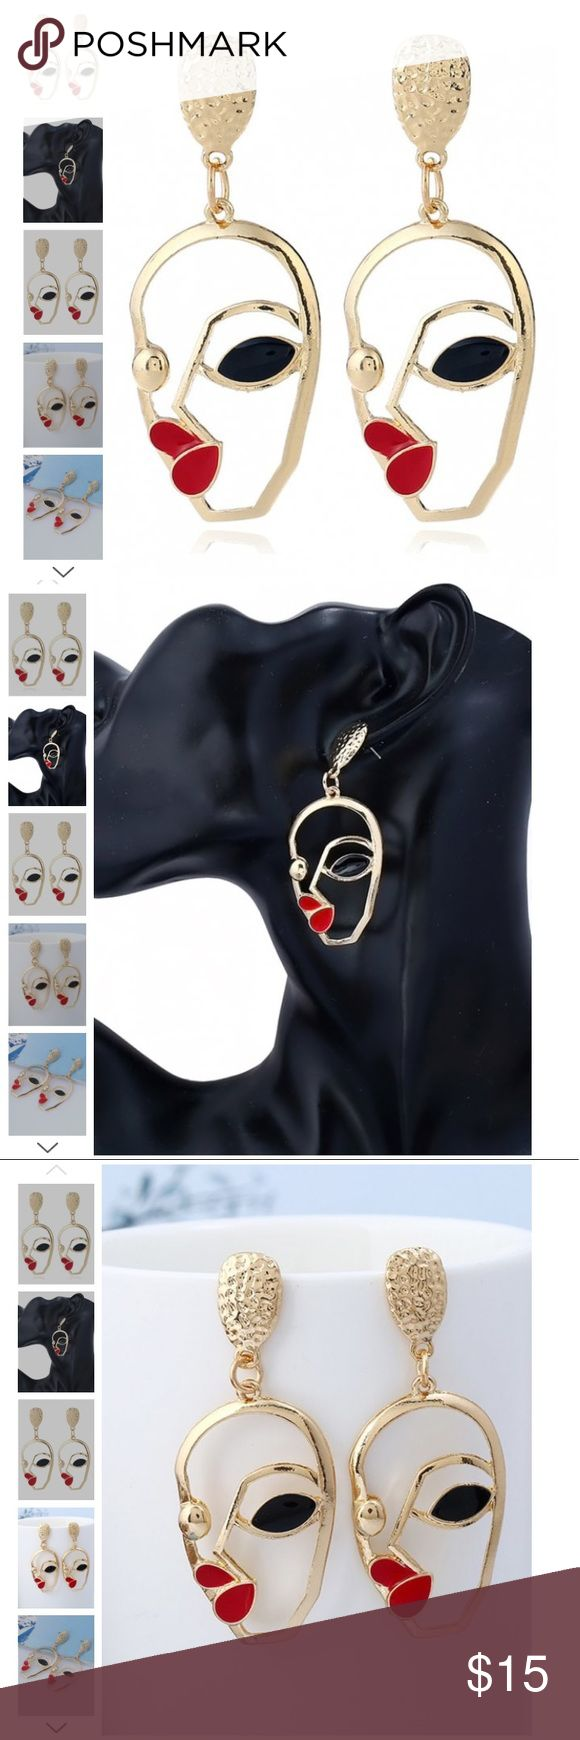 🌟🌟Top trendy earrings🌟🌟 Earring Type: Stud Earrings  Gender: For Girls,For Women  Metal Type: Alloy  Style: Gothic  Shape/Pattern: Face  Length: 6.2cm Jewelry Earrings